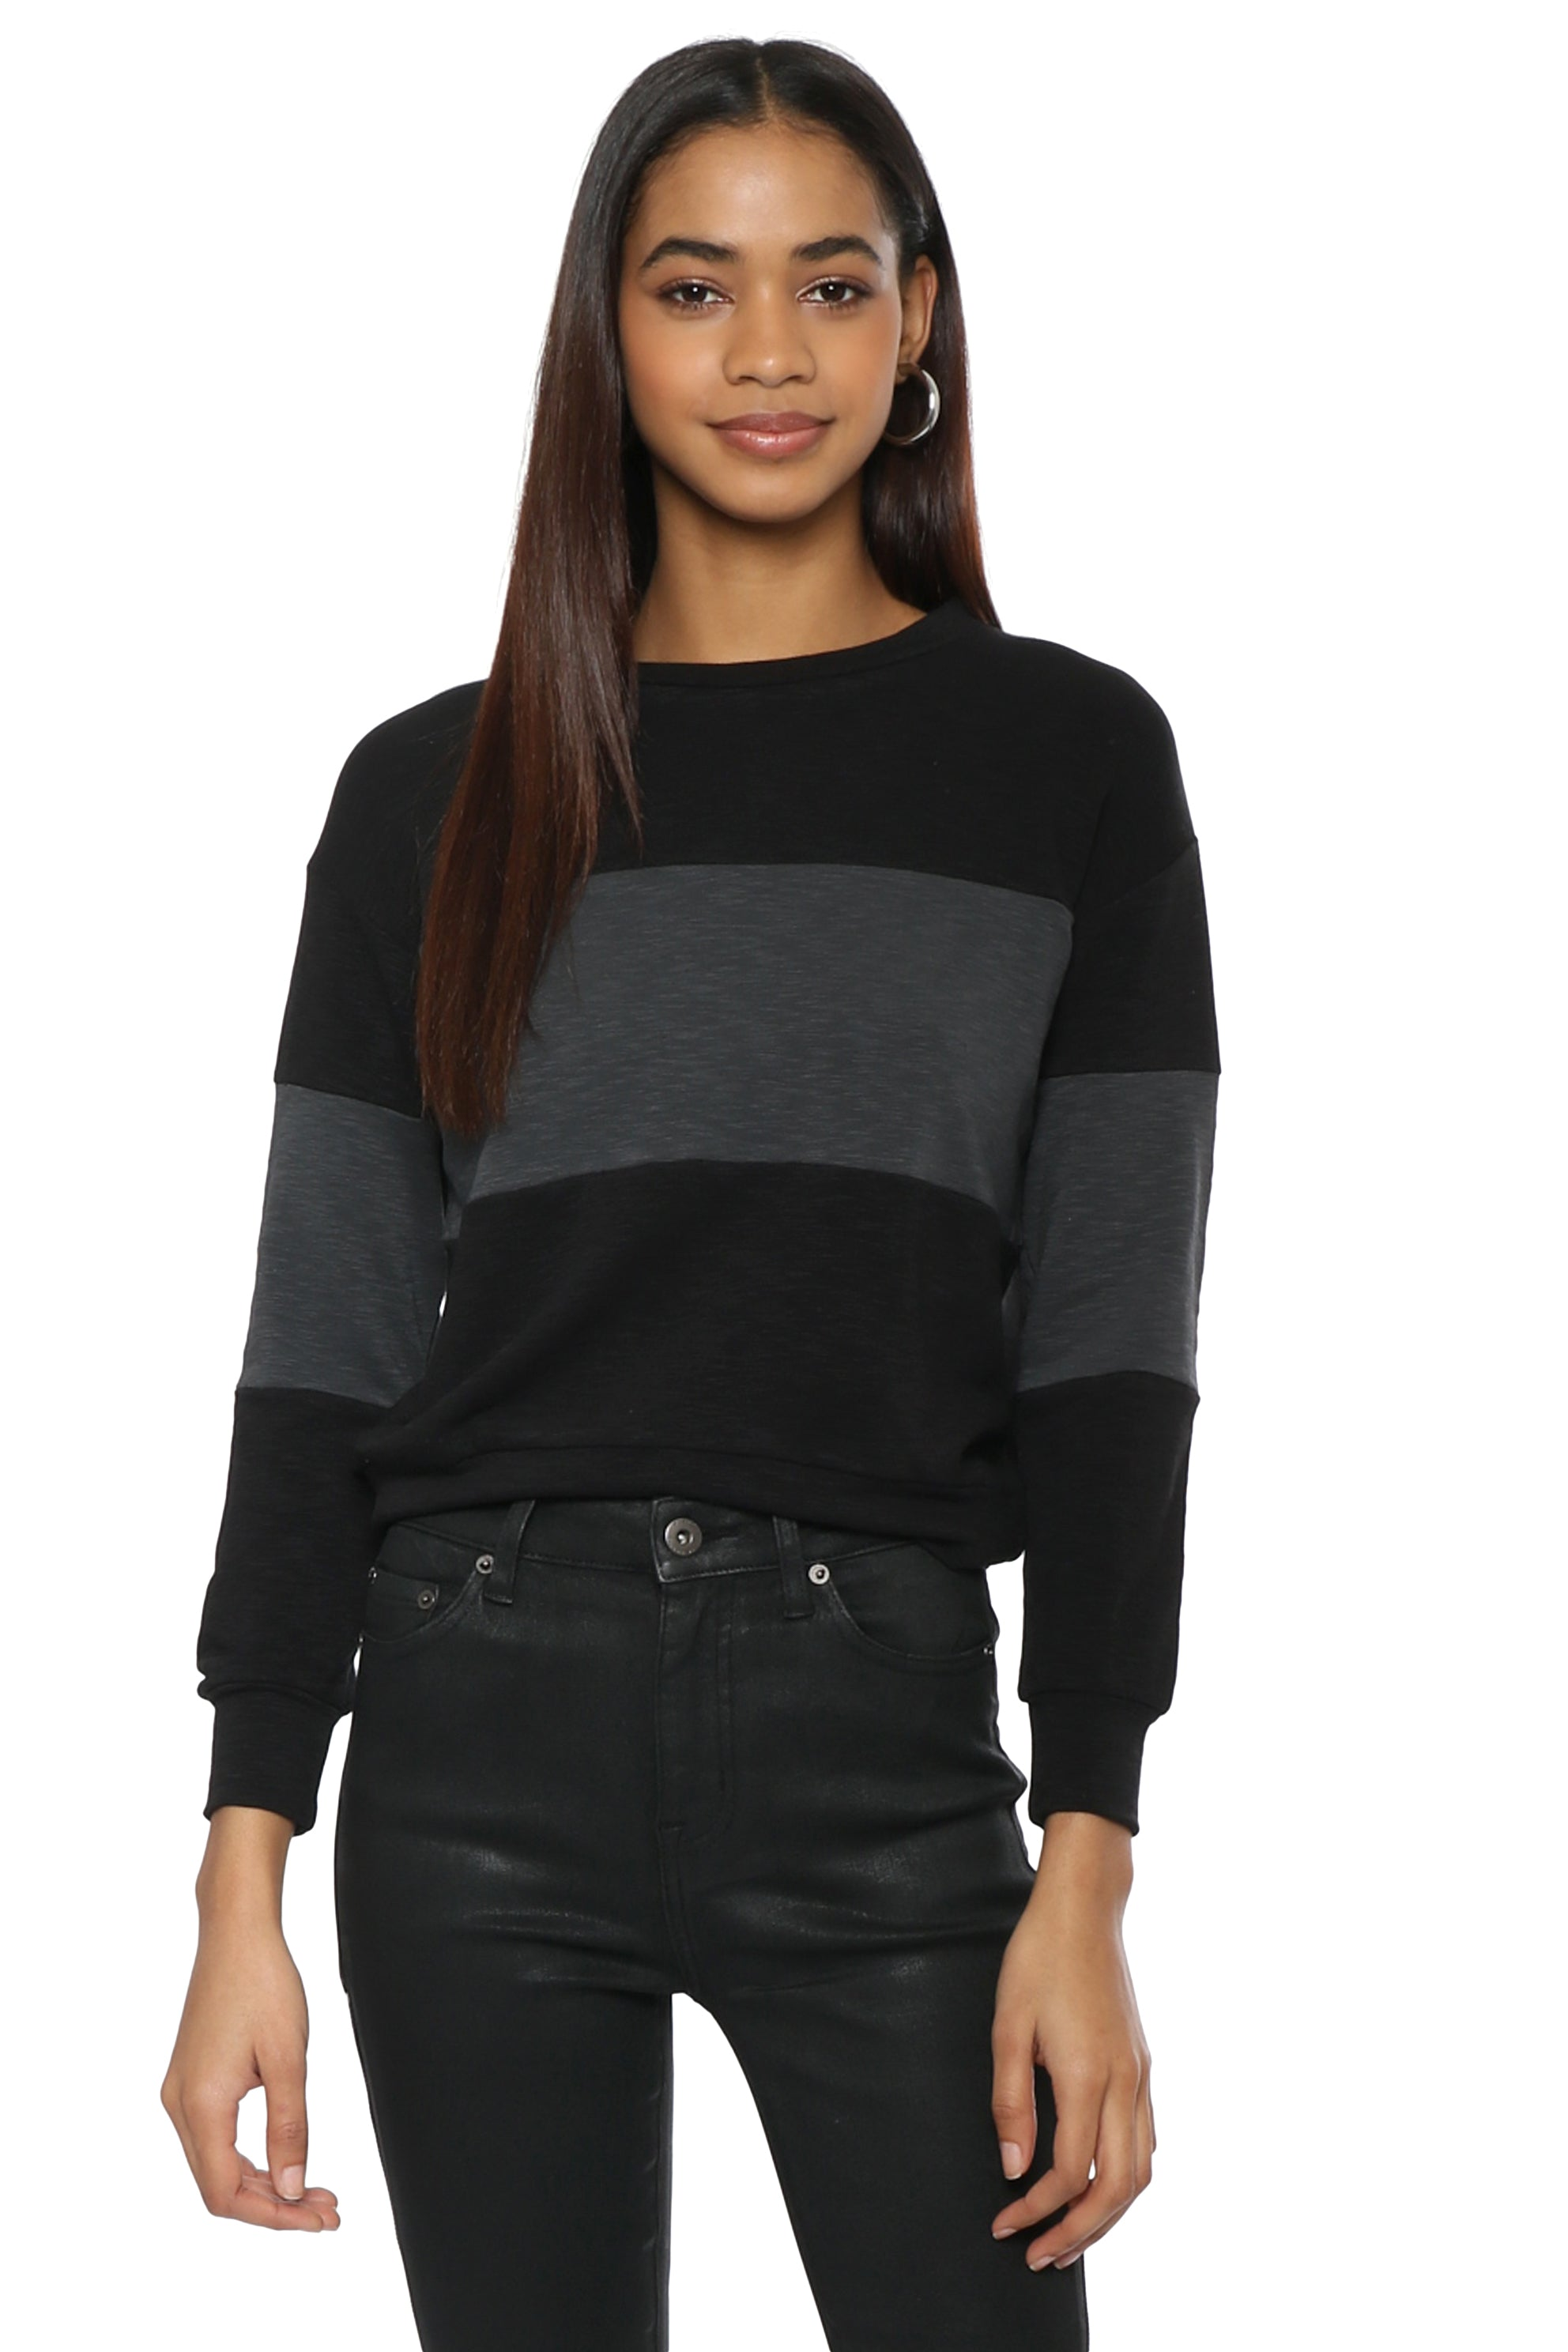 781736c76 Sunday Stevens Color Block Pullover